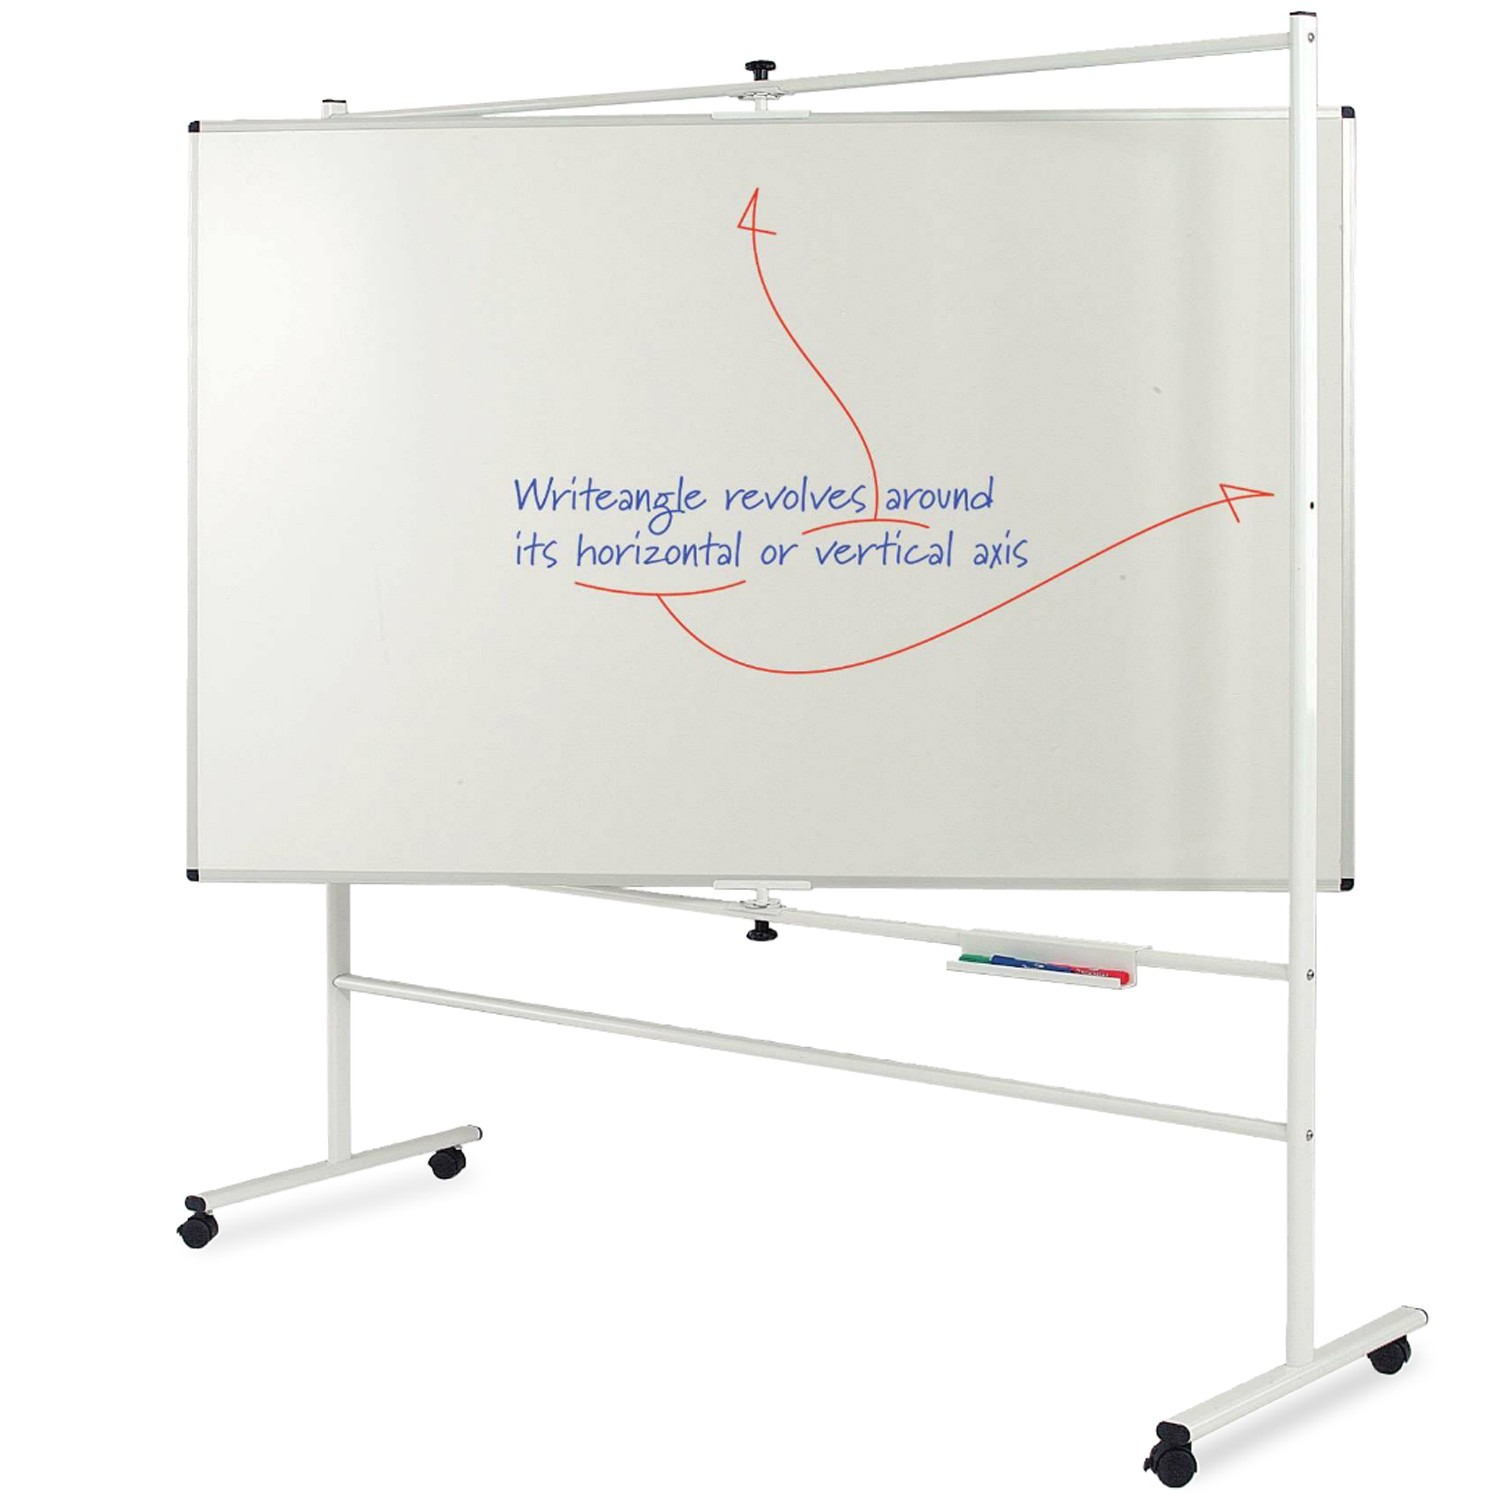 Write Angle Revolving Whiteboard - product pic